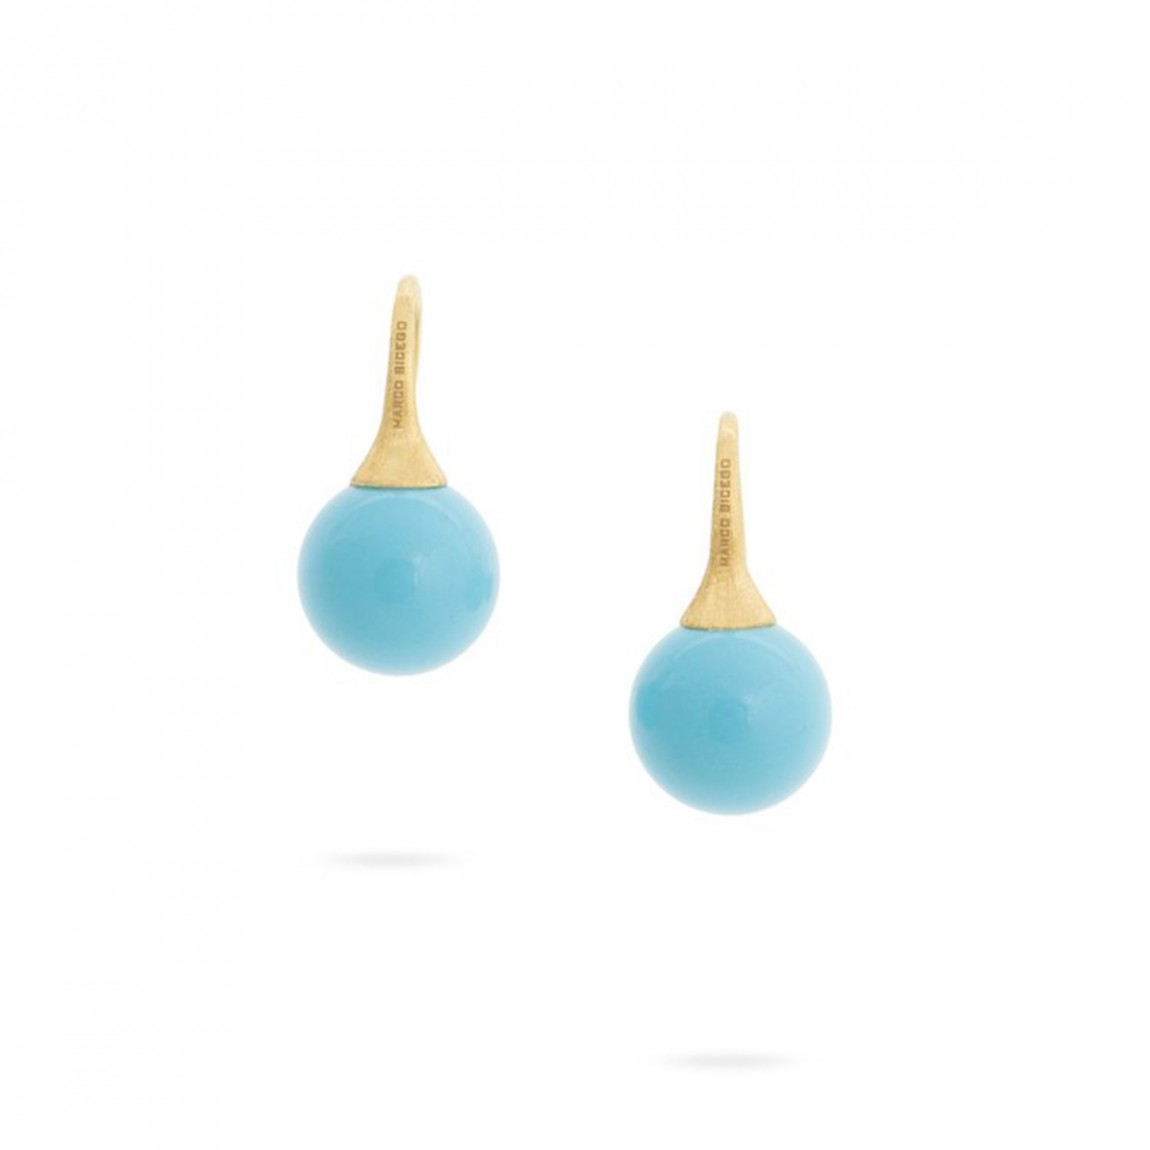 Marco Bicego 189K Yellow Gold   Turquoise Gold Earrings with Stones OB1639-A TU Y